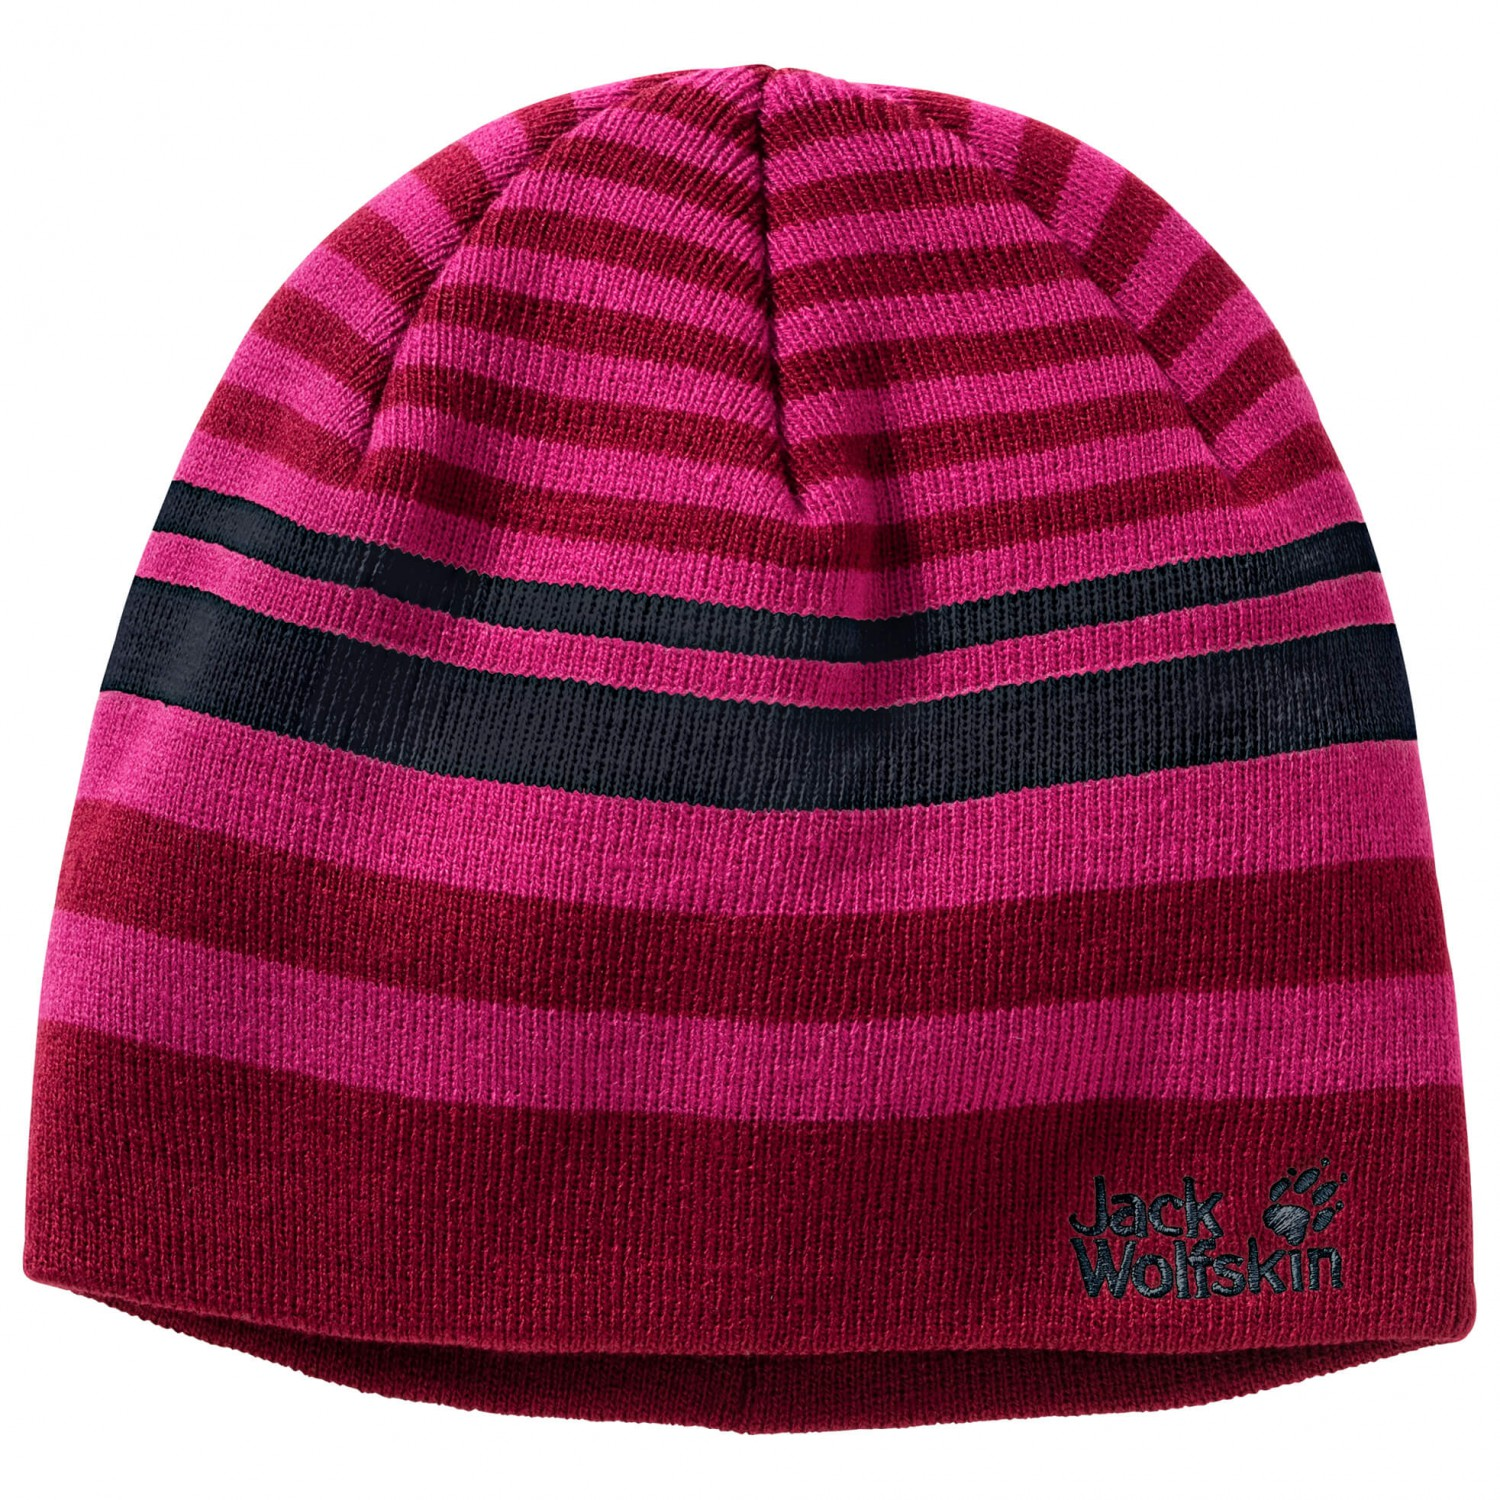 huge selection of 5bfae ecfe8 Jack Wolfskin Cross Knit Cap - Berretto Bambini | Acquista ...